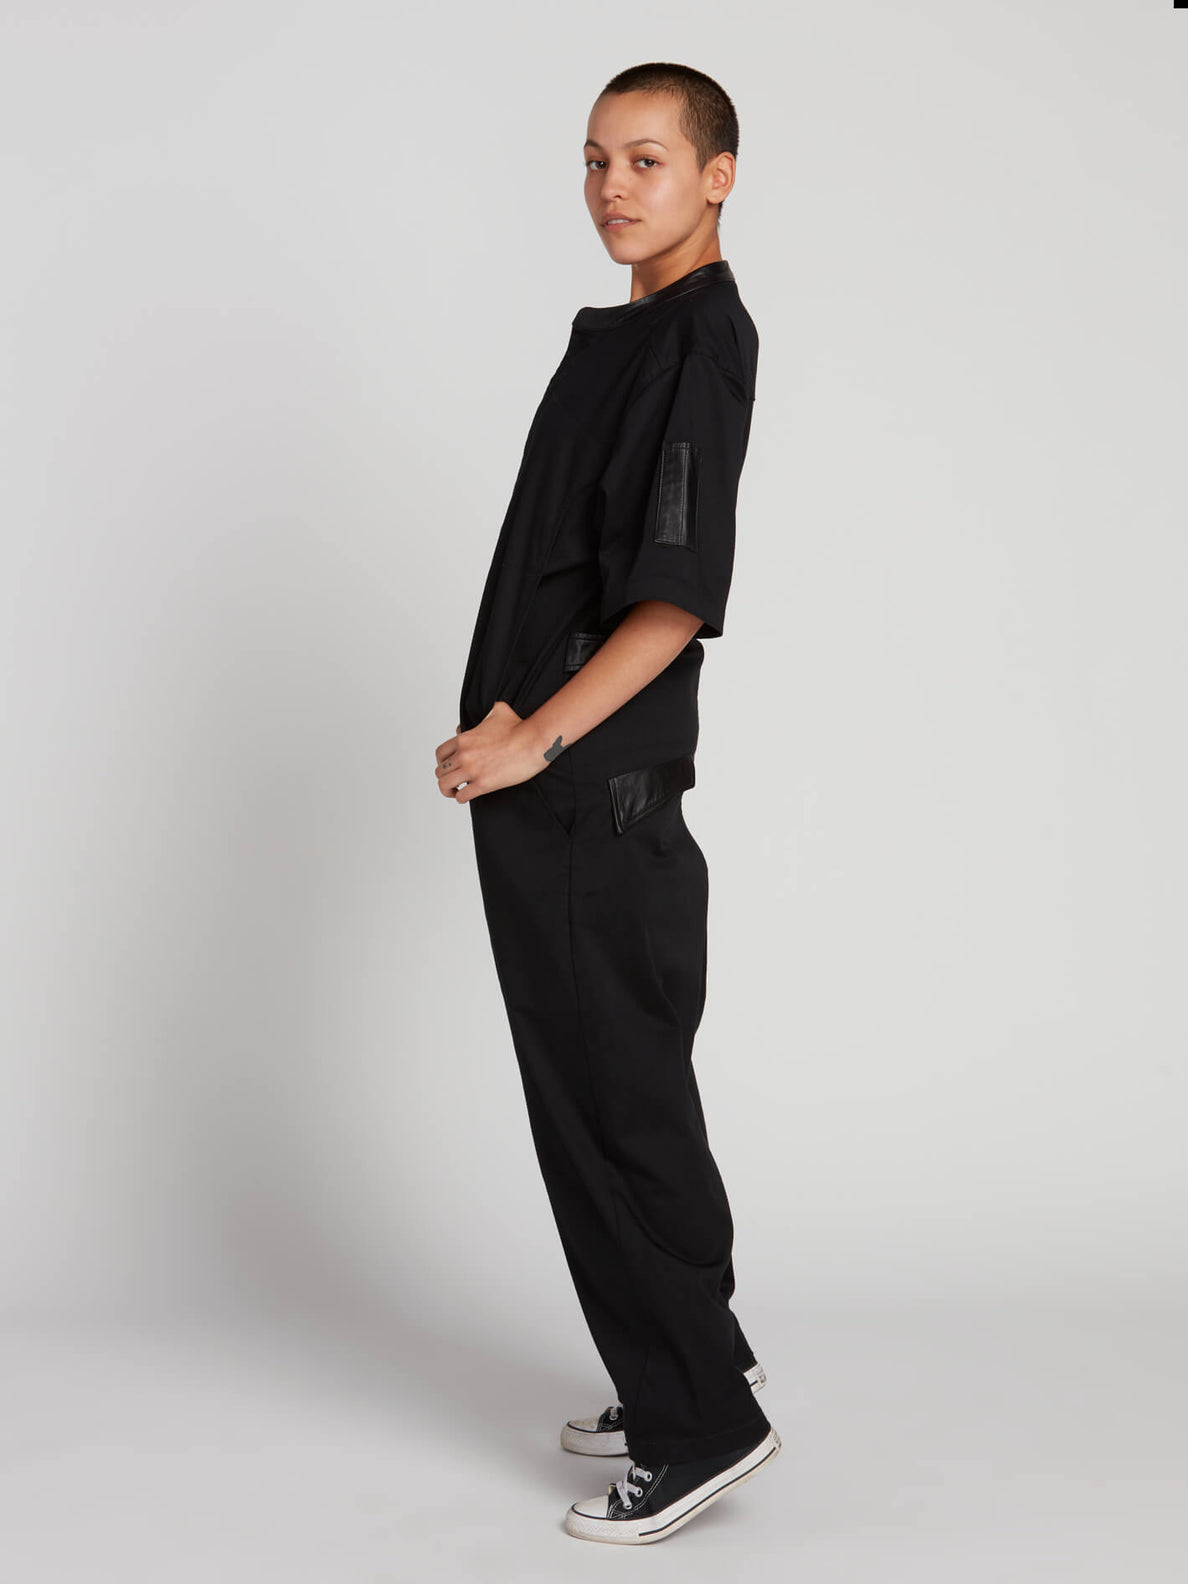 Rogan Gregory X Volcom Coverall In Black, Alternate View